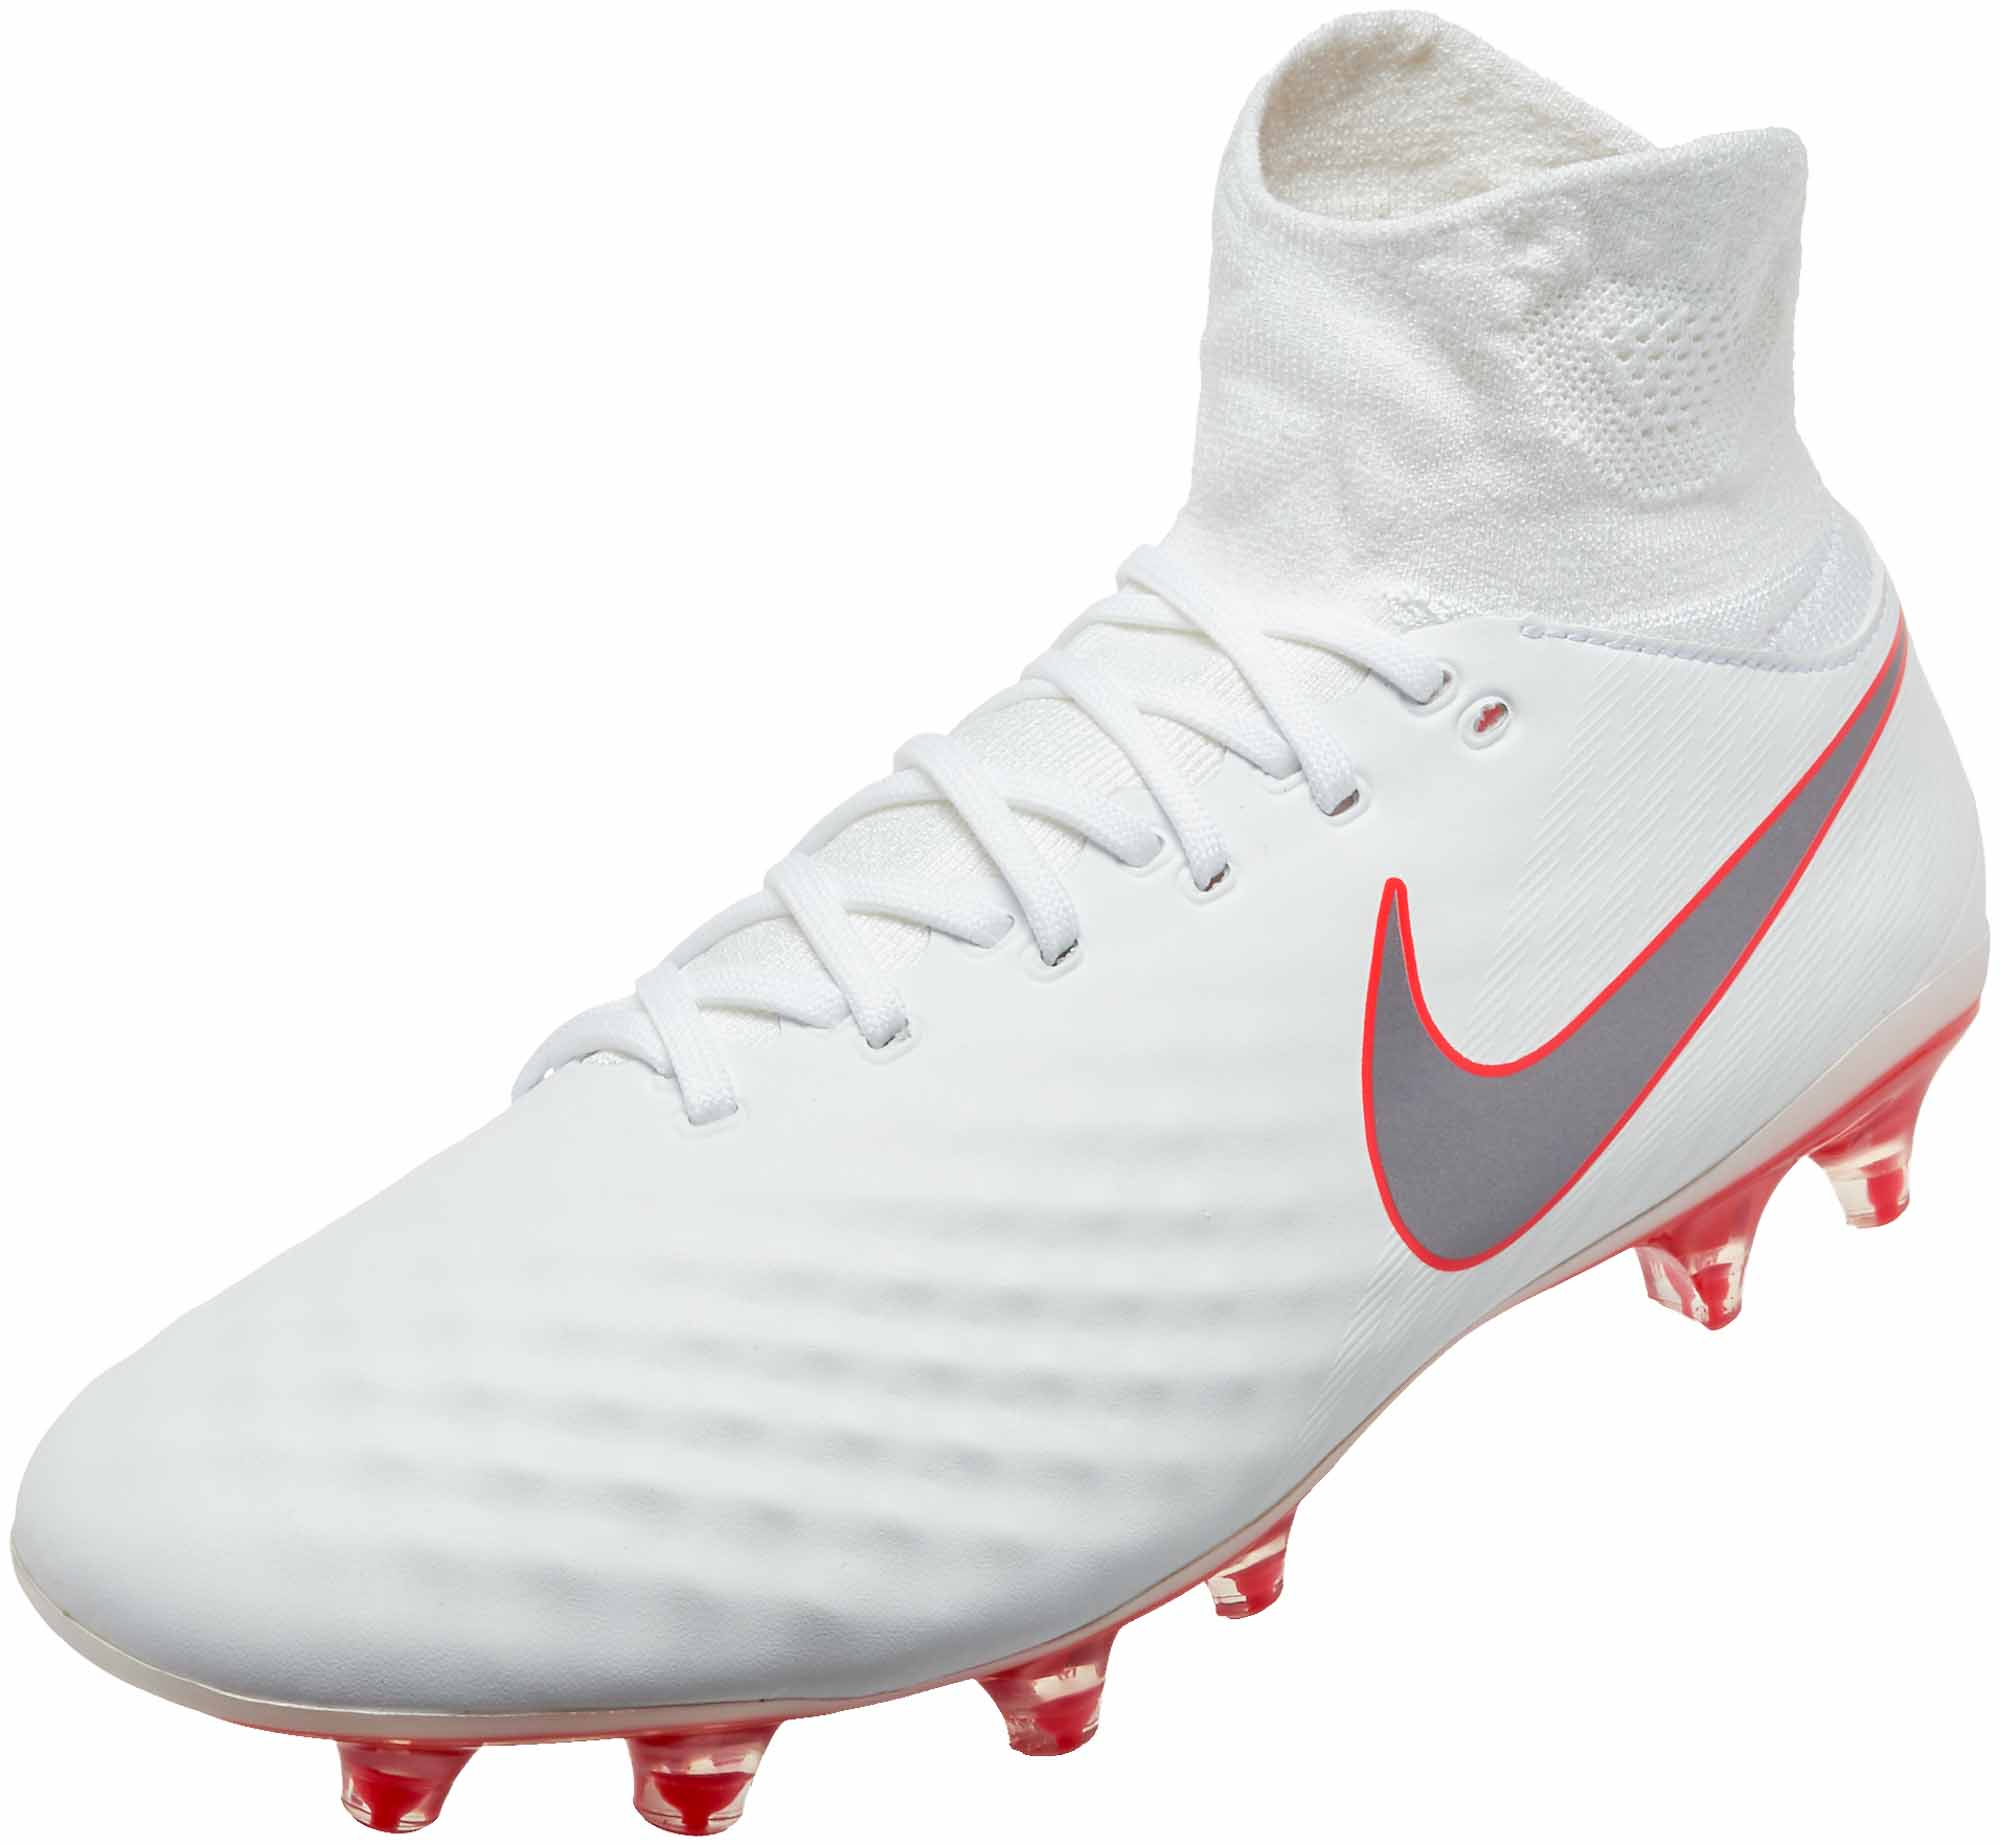 nike magista obra ii pro df fg white metallic cool grey soccerpro. Black Bedroom Furniture Sets. Home Design Ideas